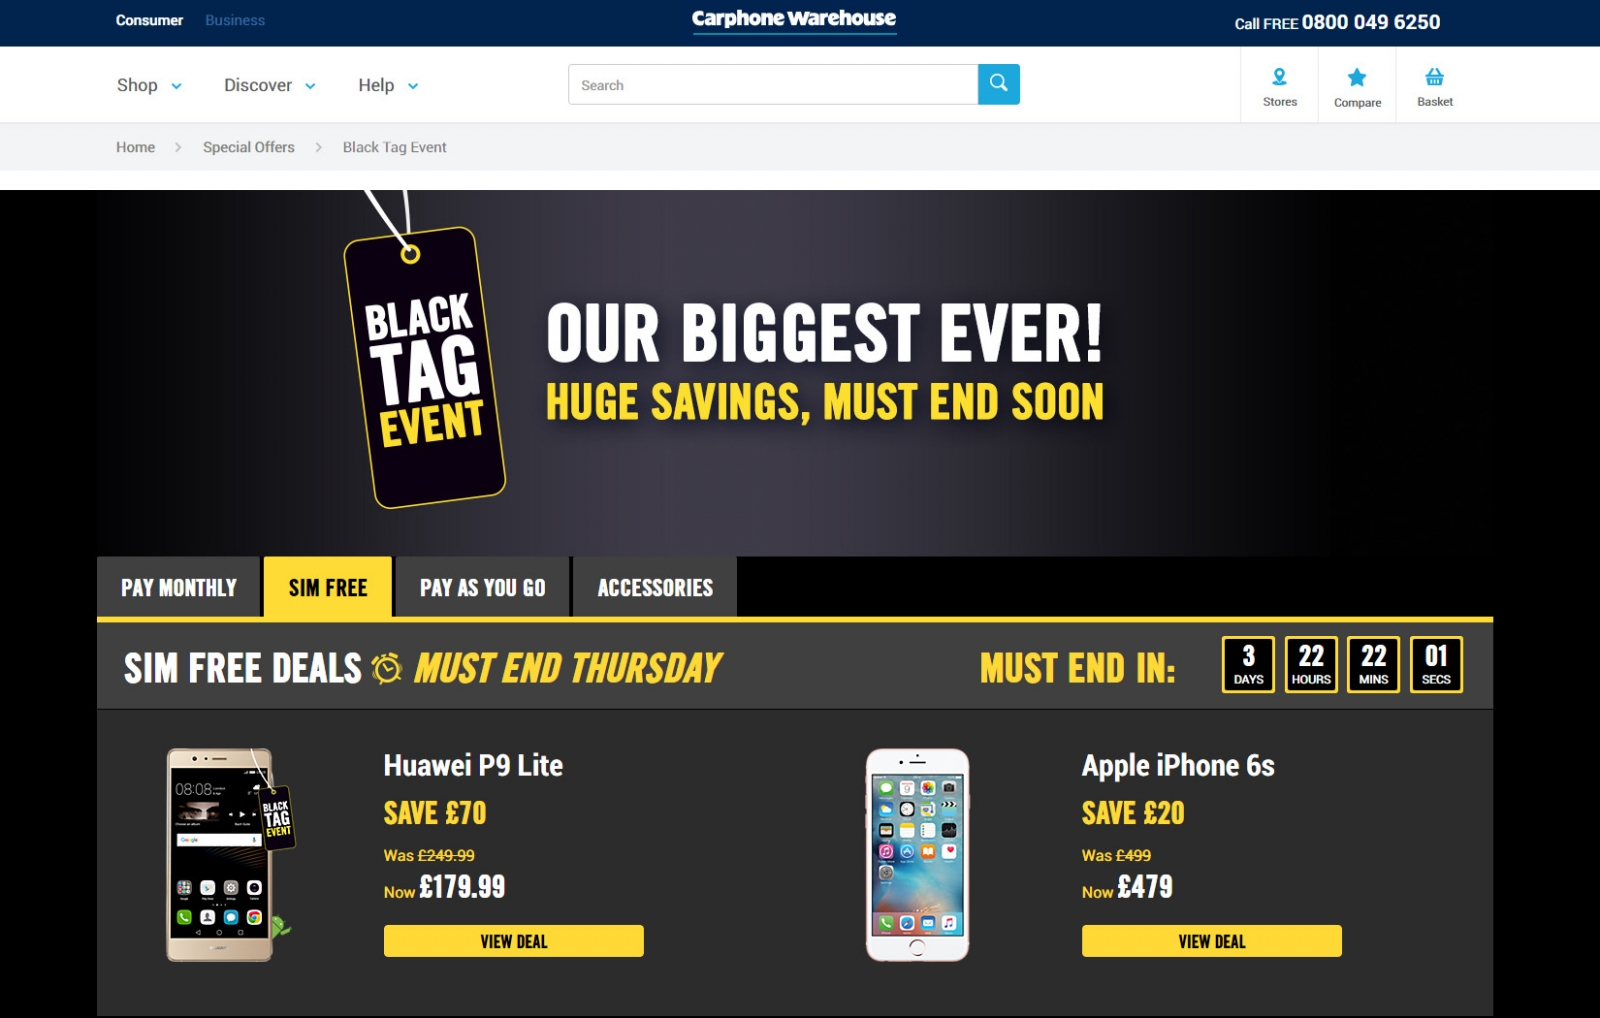 Carphone Warehouse's Black Friday 2016 deals